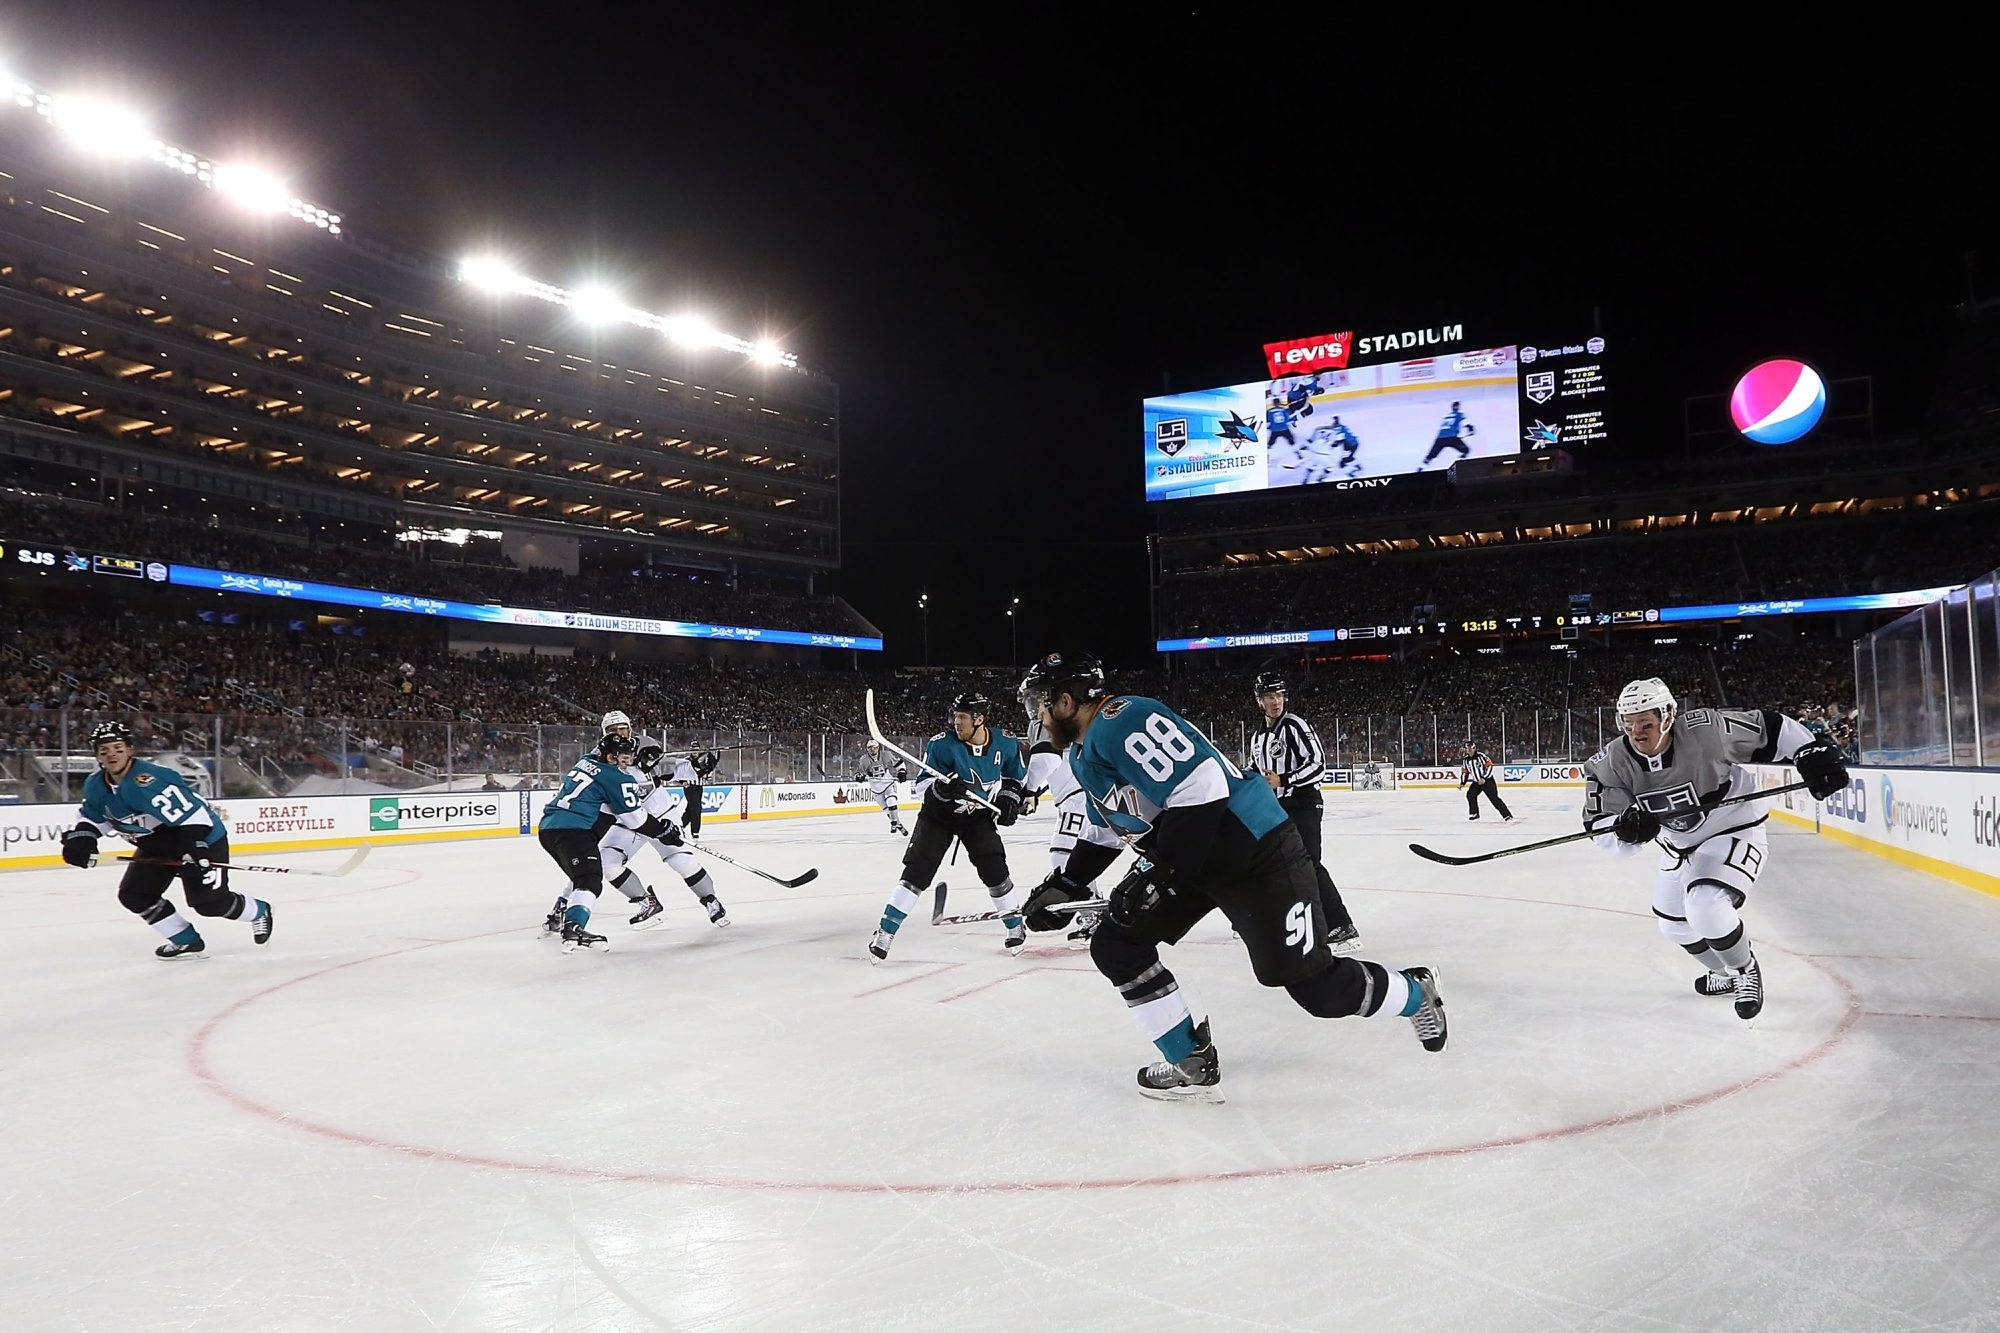 Stadium Series games like this one last season between the Los Angeles Kings and San Jose Sharks at Levi's Stadium in Santa Clara, Calif., have been boosted by the efforts of John Collins, who is departing his position as the NHL's chief operating officer.